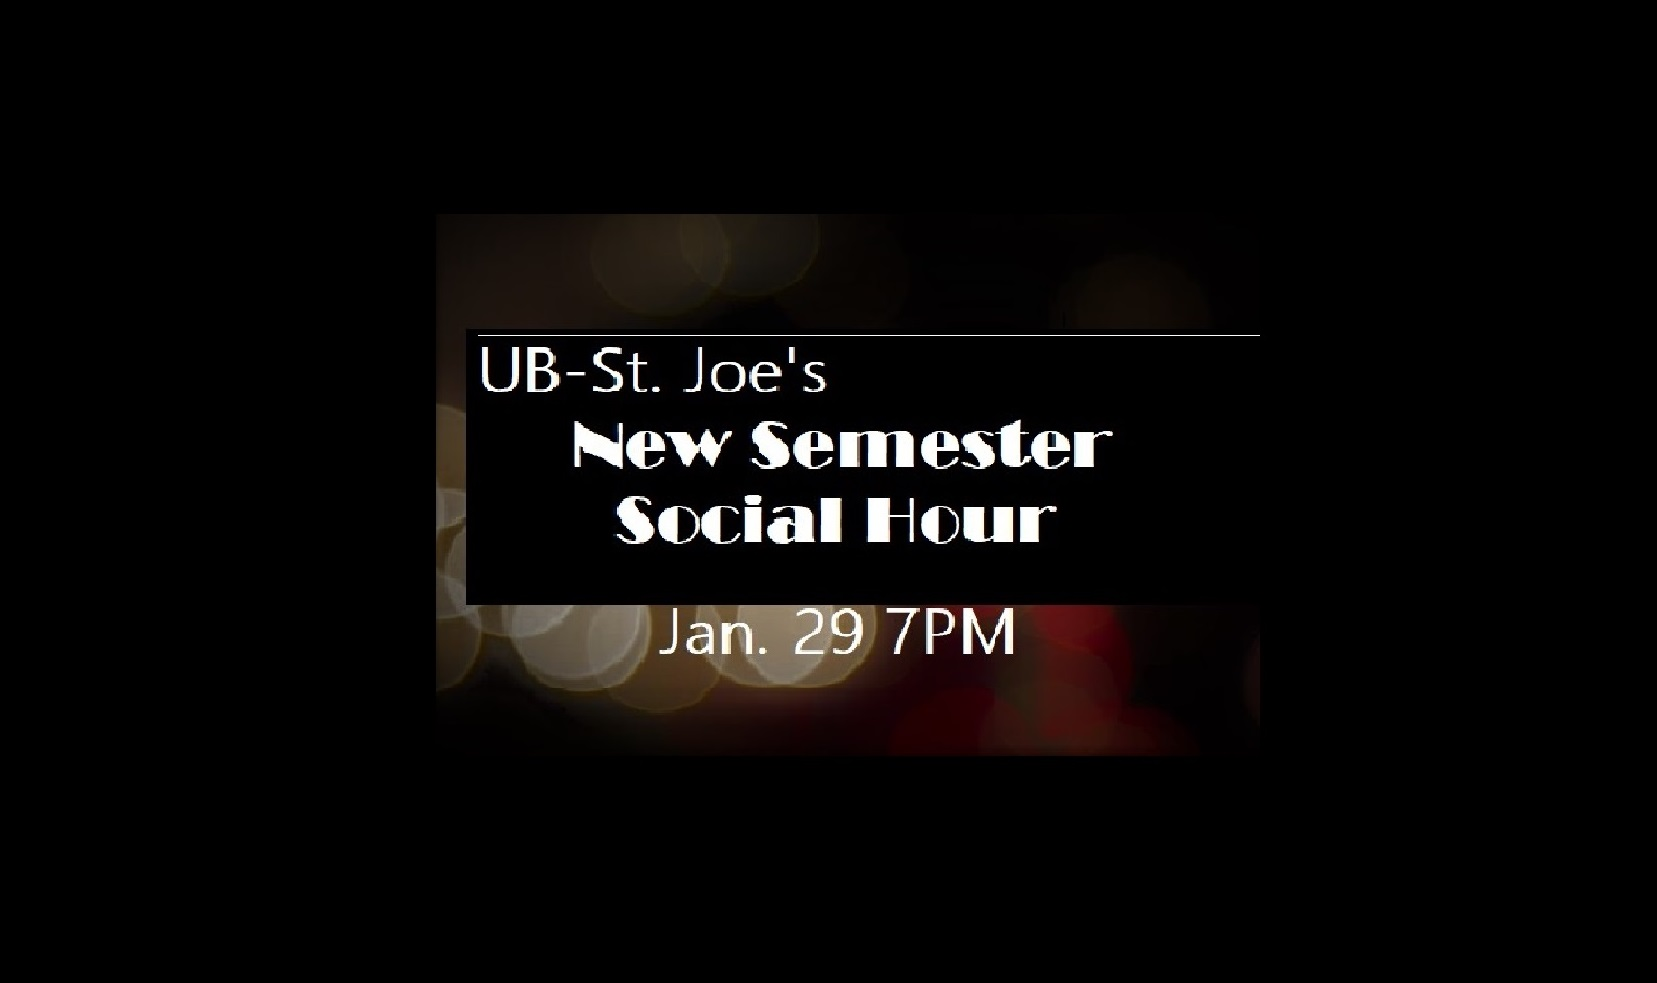 ub Social hour web.jpg cropped